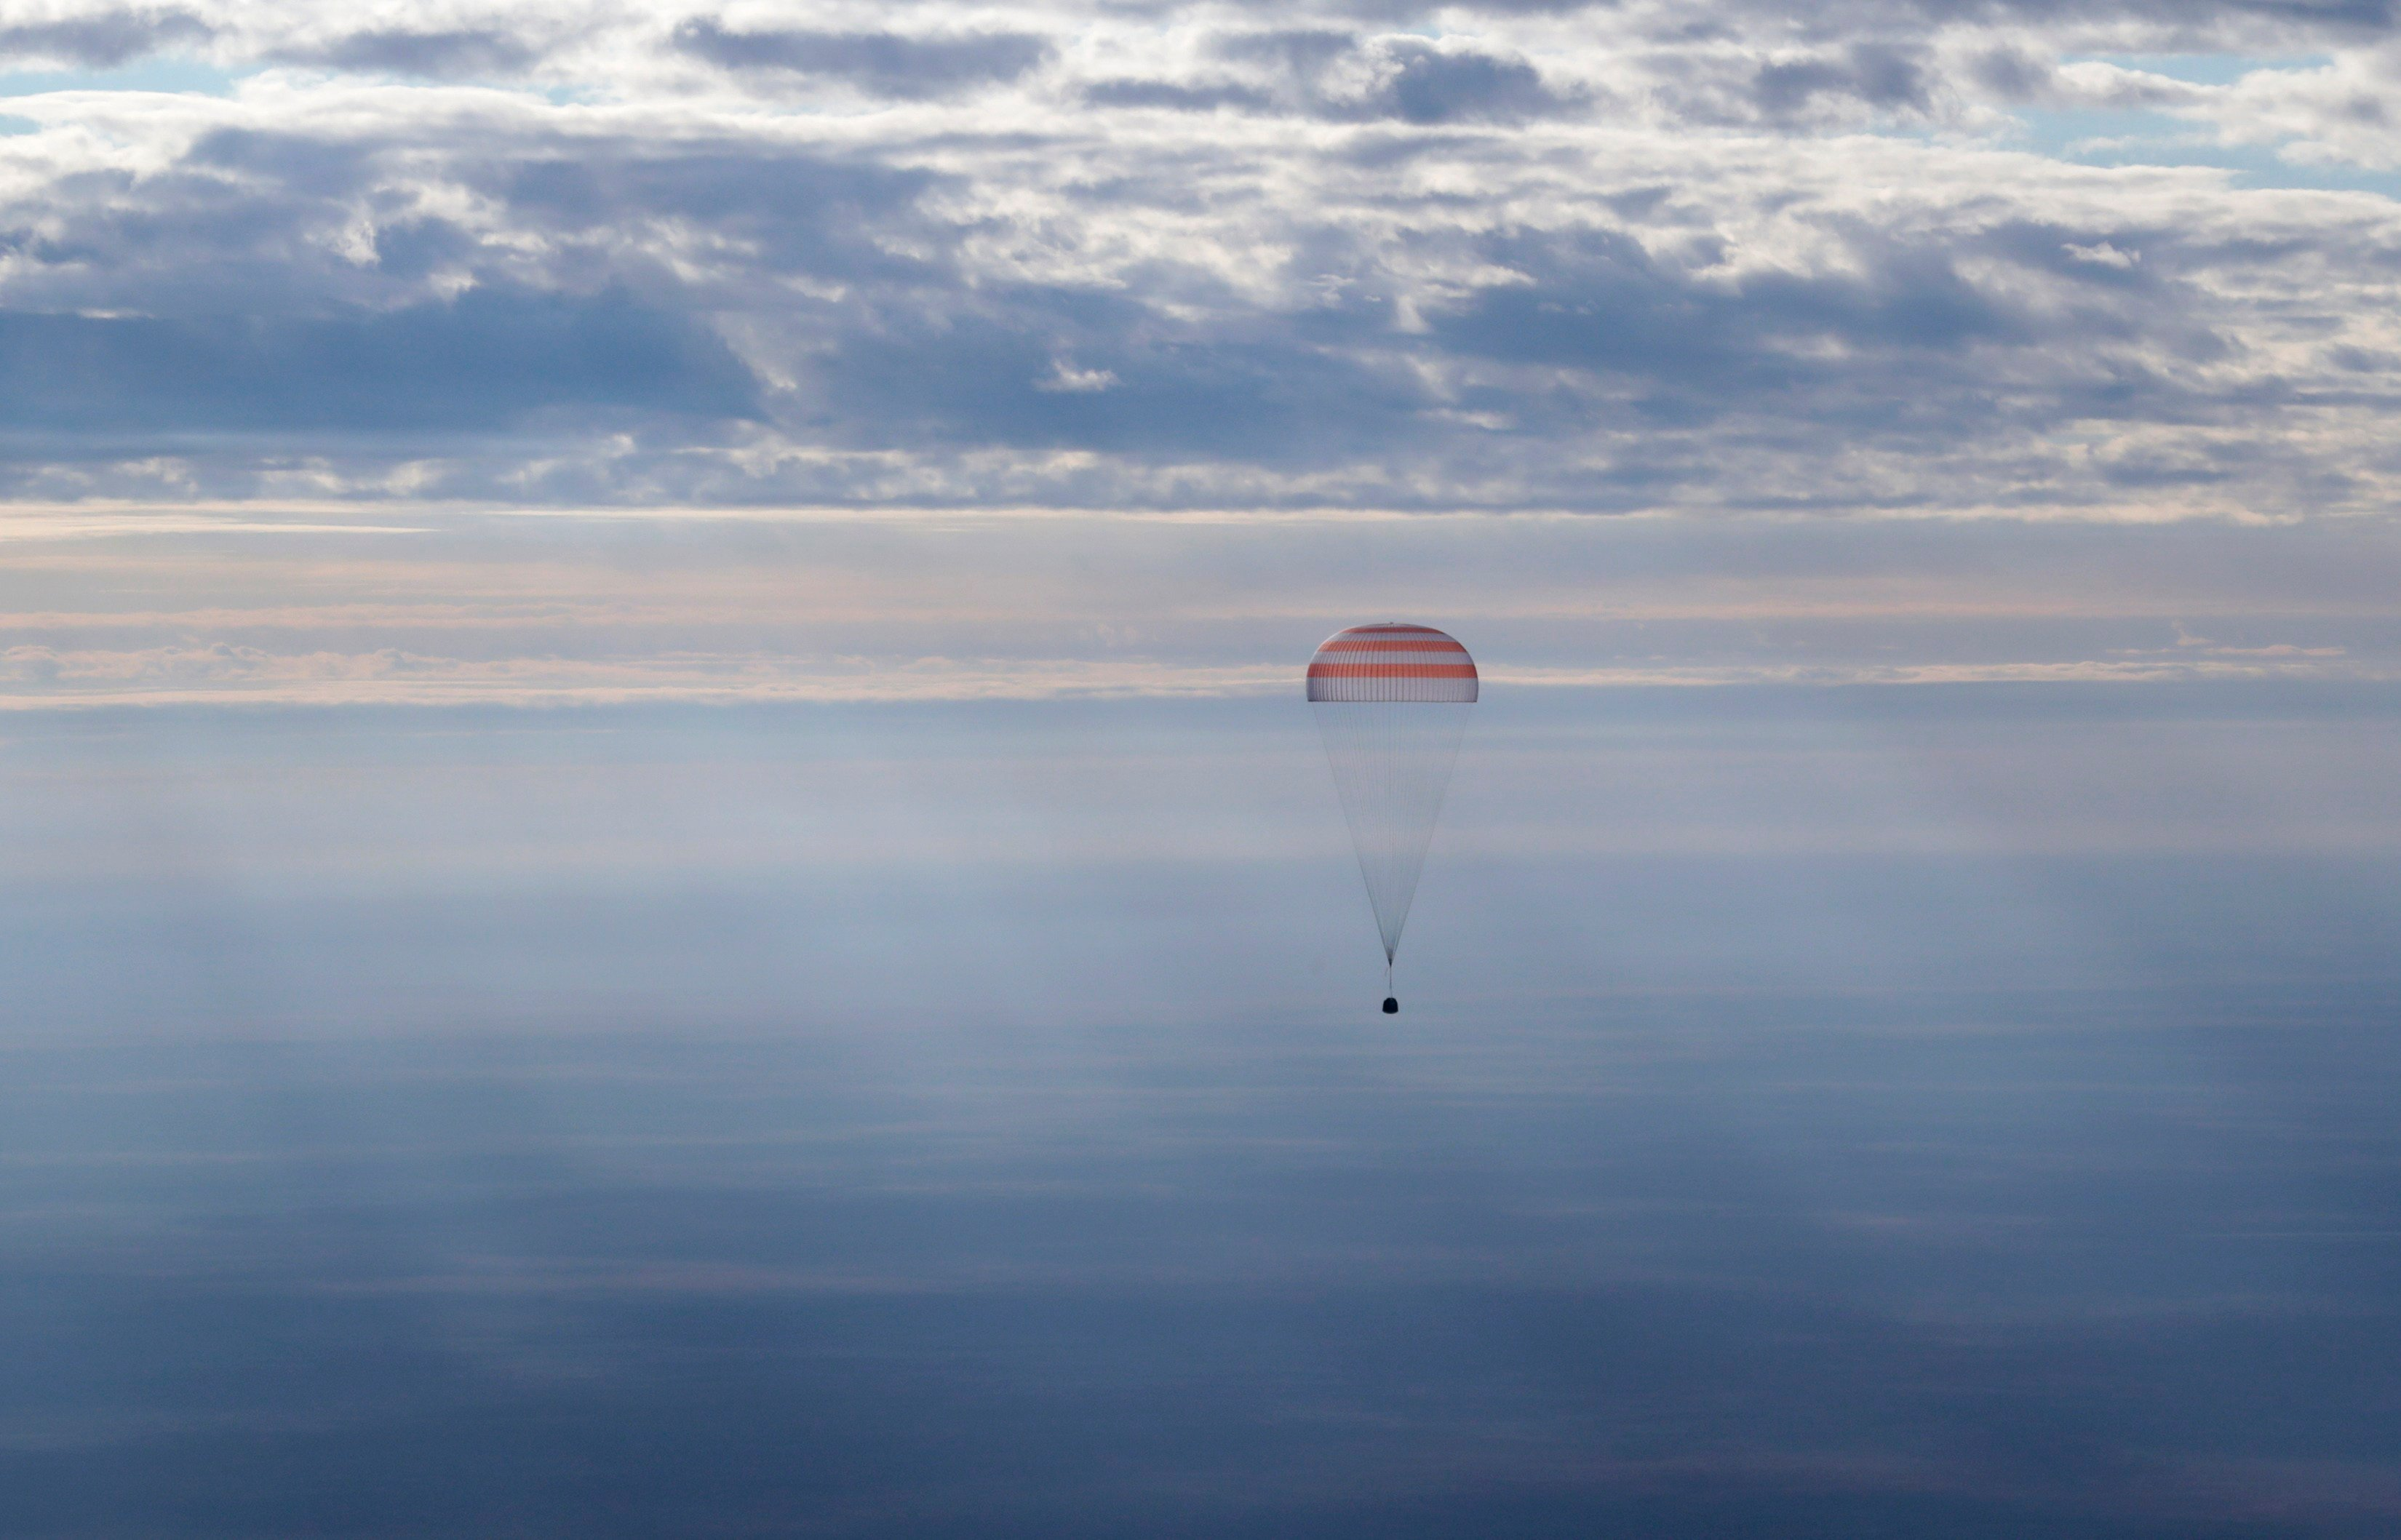 A Russian Soyuz MS space capsule descends about 150 km (90 miles) southeast of the town of Dzhezkazgan, Kazakhstan, Sunday, Oct. 30, 2016. A Soyuz space capsule with U.S. astronaut Kate Rubins, Russian cosmonaut Anatoly Ivanishin, and Japanese astronaut T